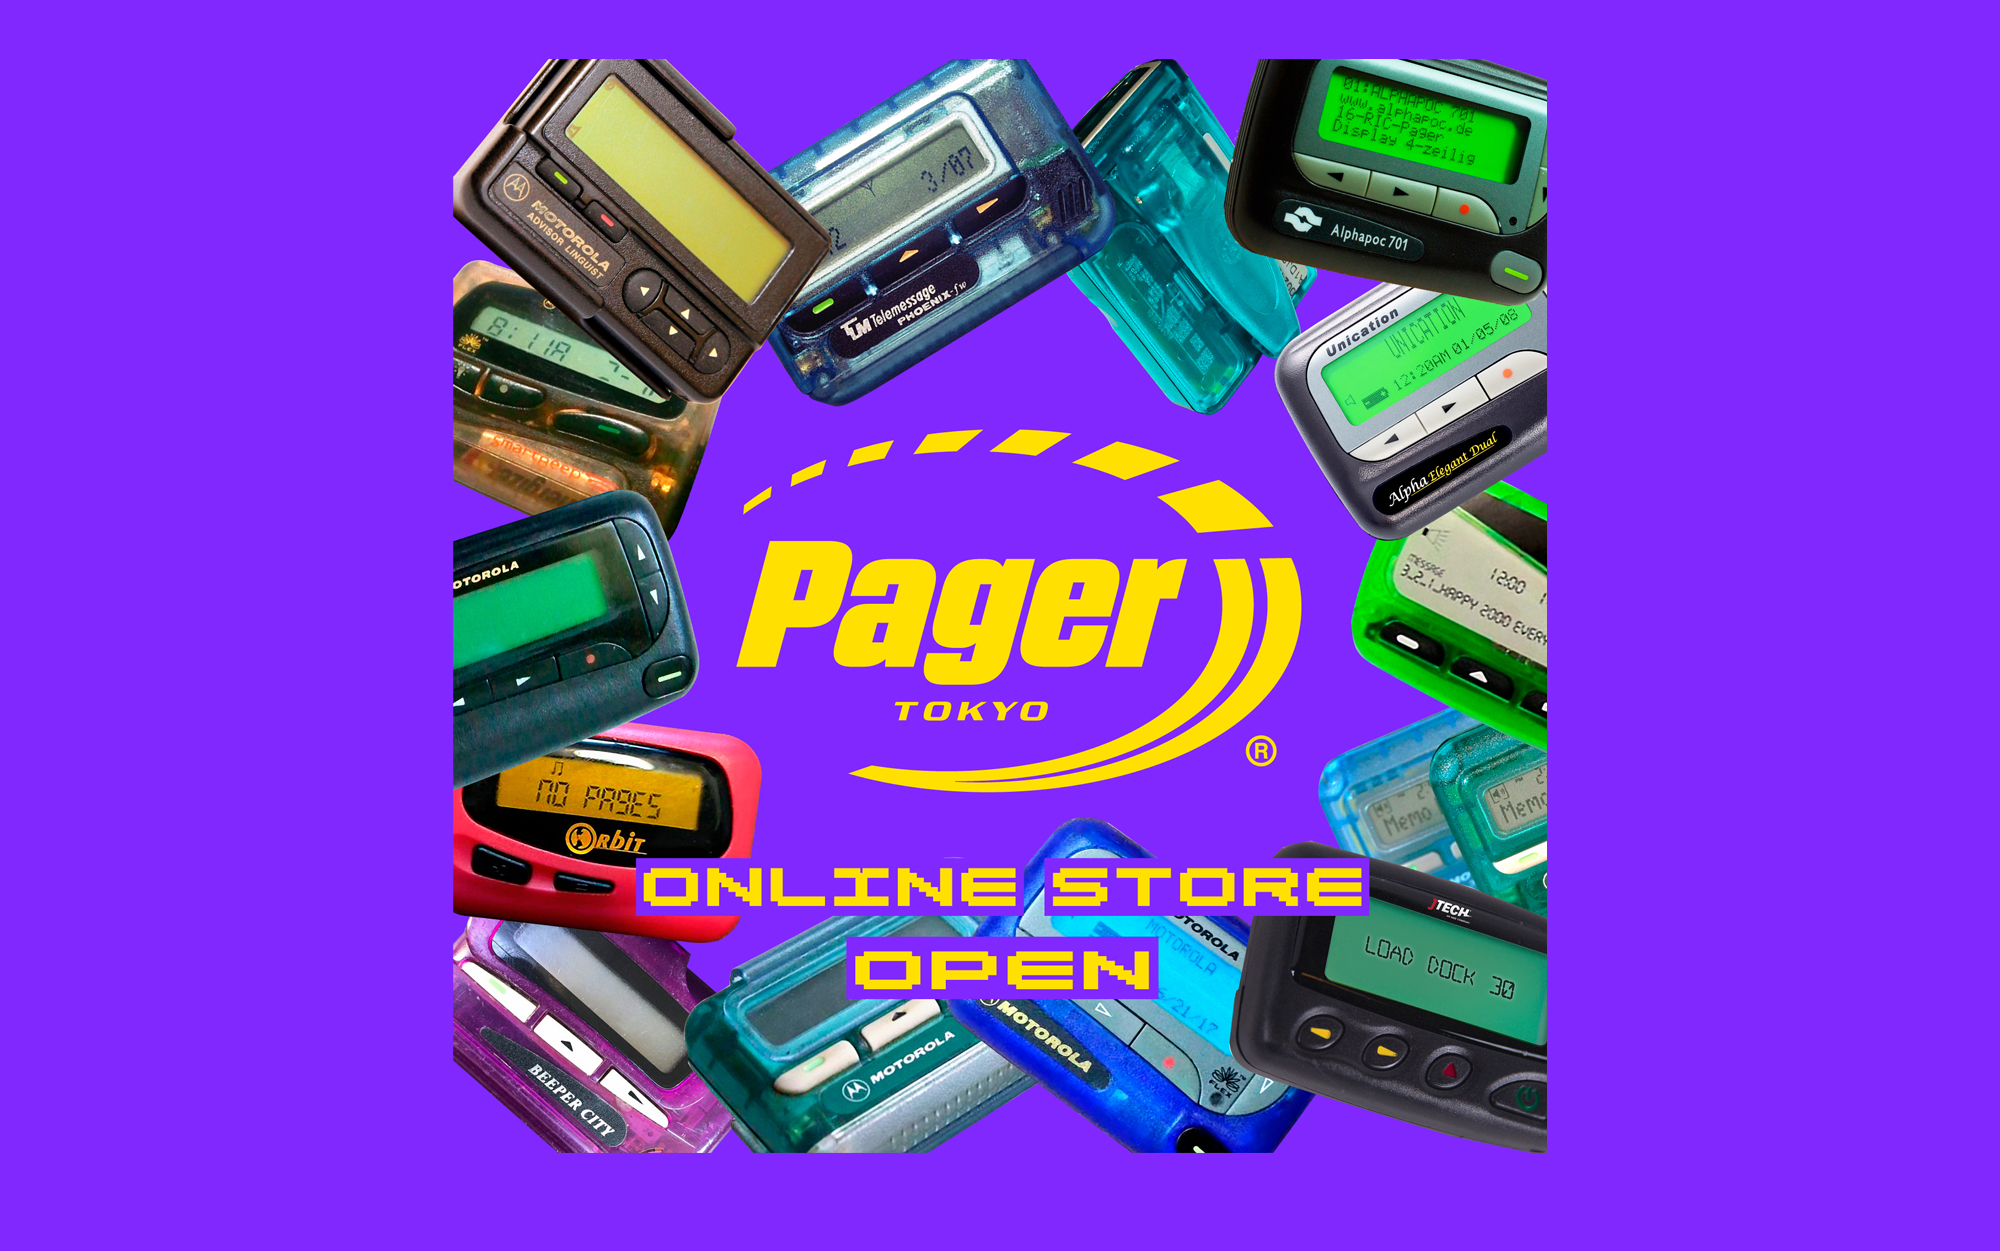 PAGER TOKYO